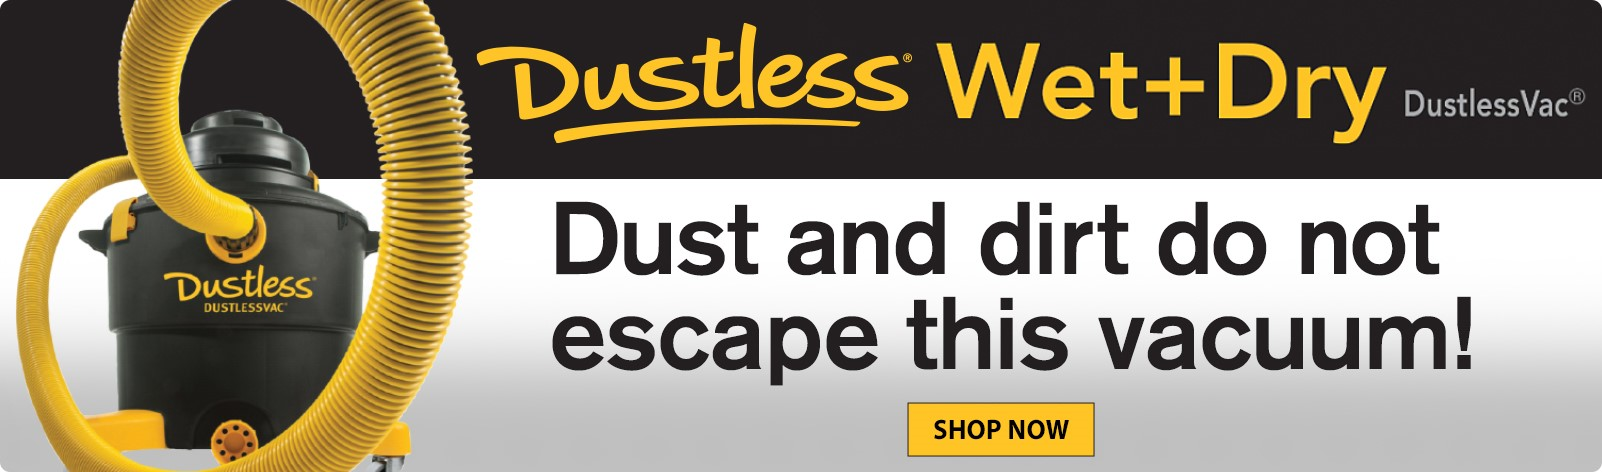 Dustless Wet + Dry Vac - Dust and dirt do not escape this vacuum!